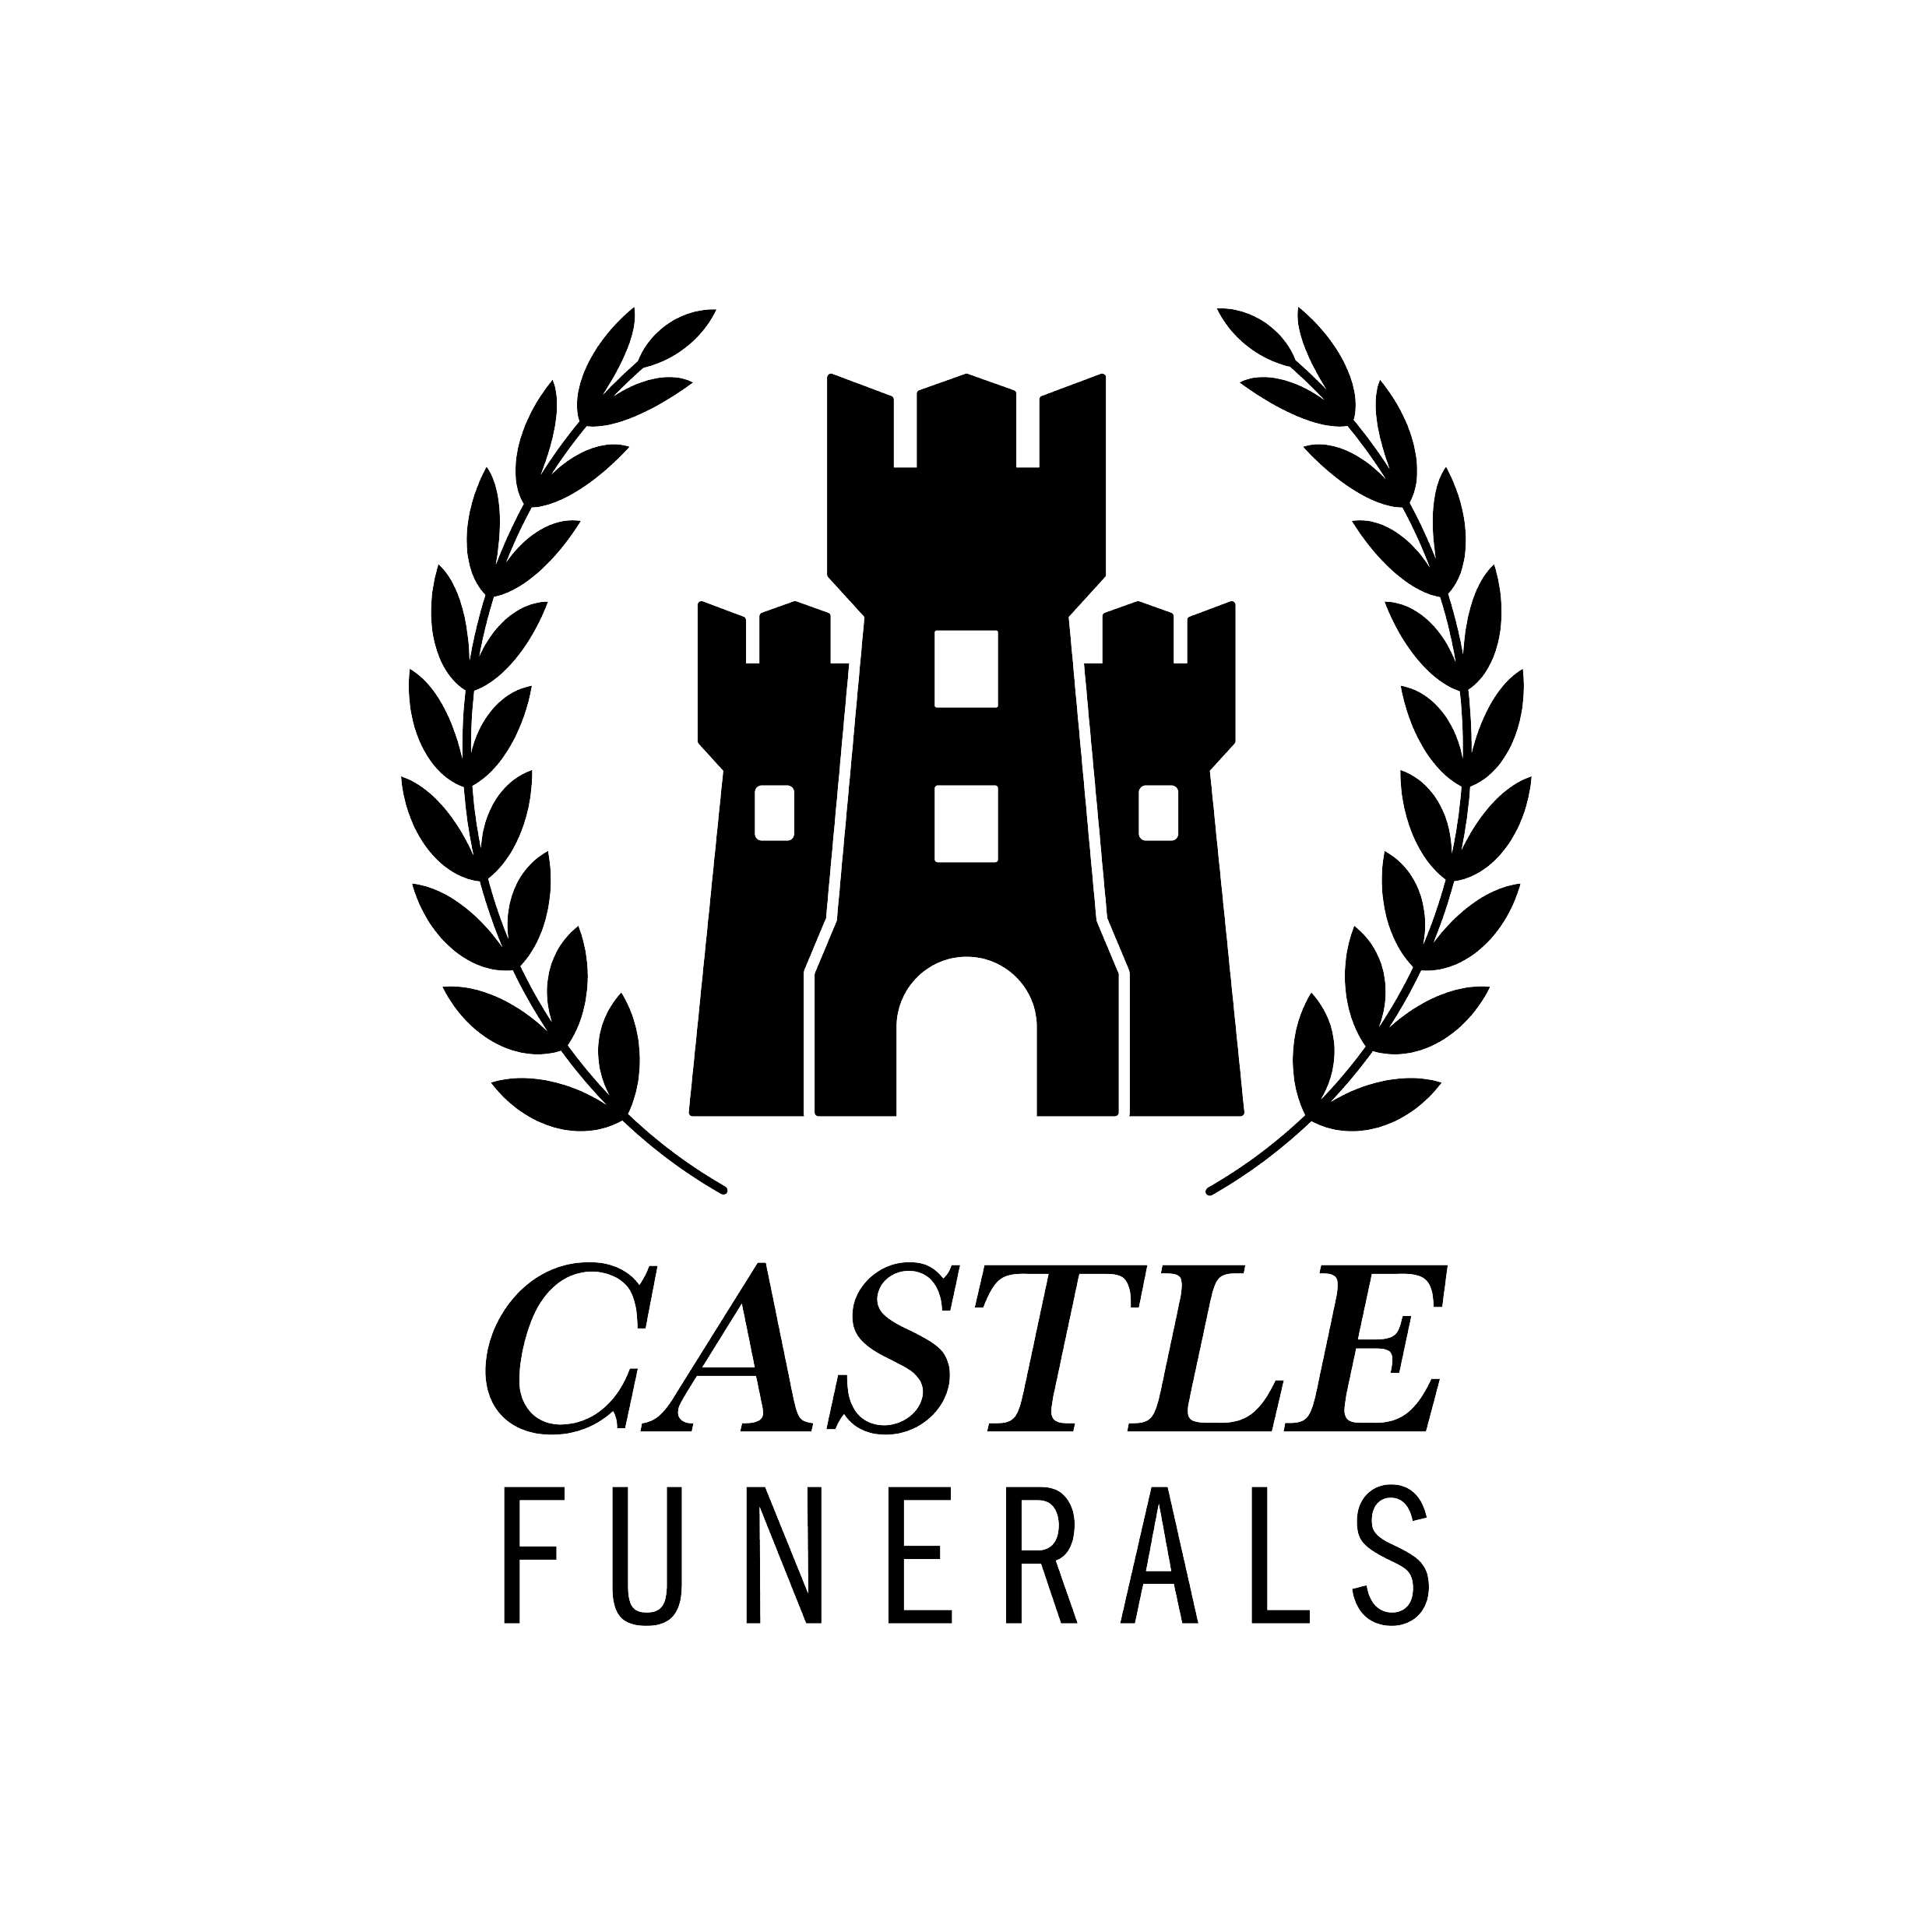 Logo Design castle funerals black